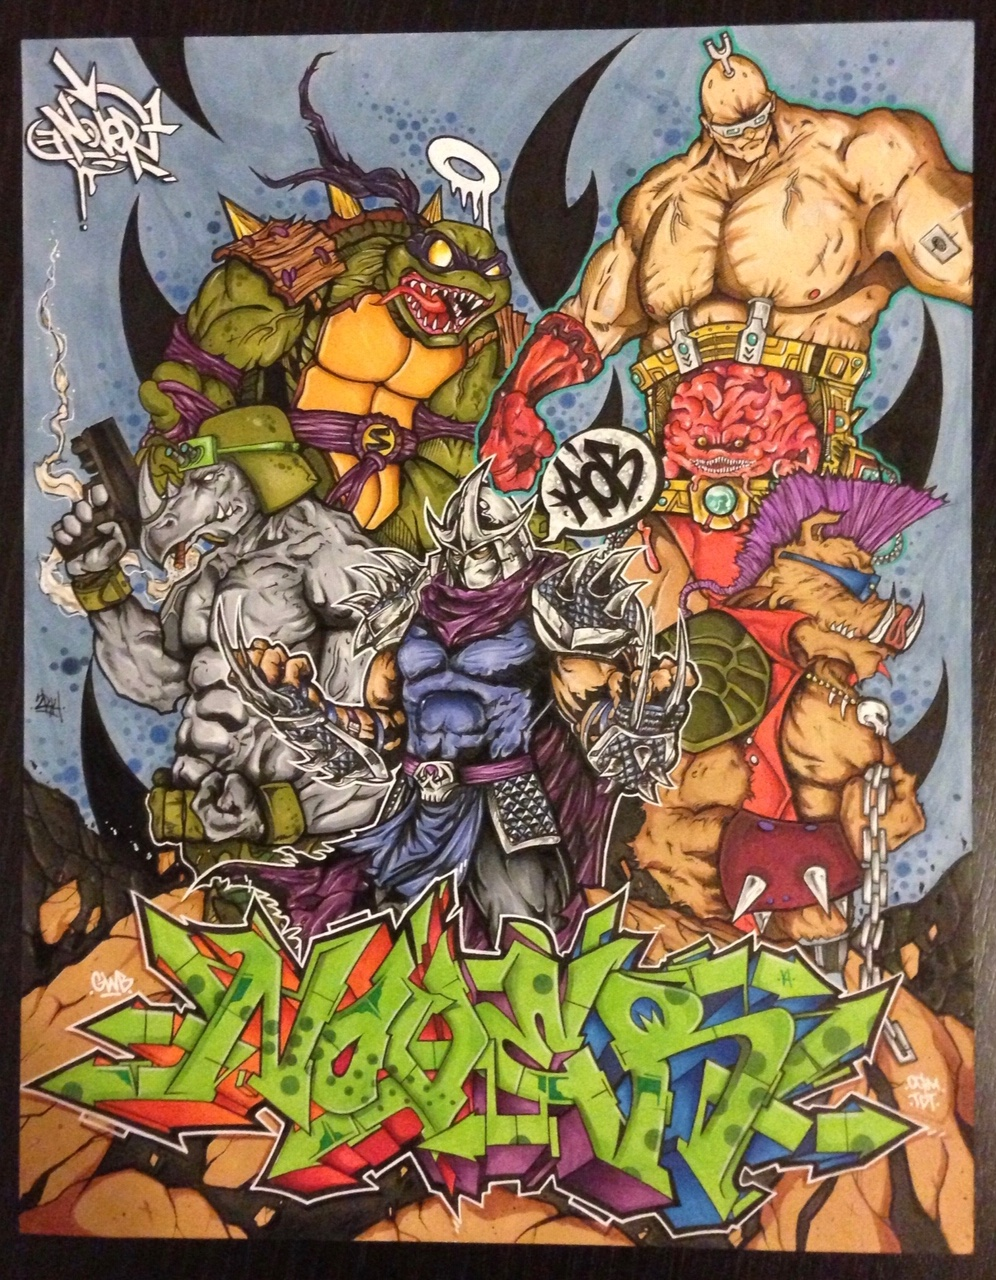 Teenage Mutant Ninja Turtles Villains by Nover, markers & pen on paper, 2014.